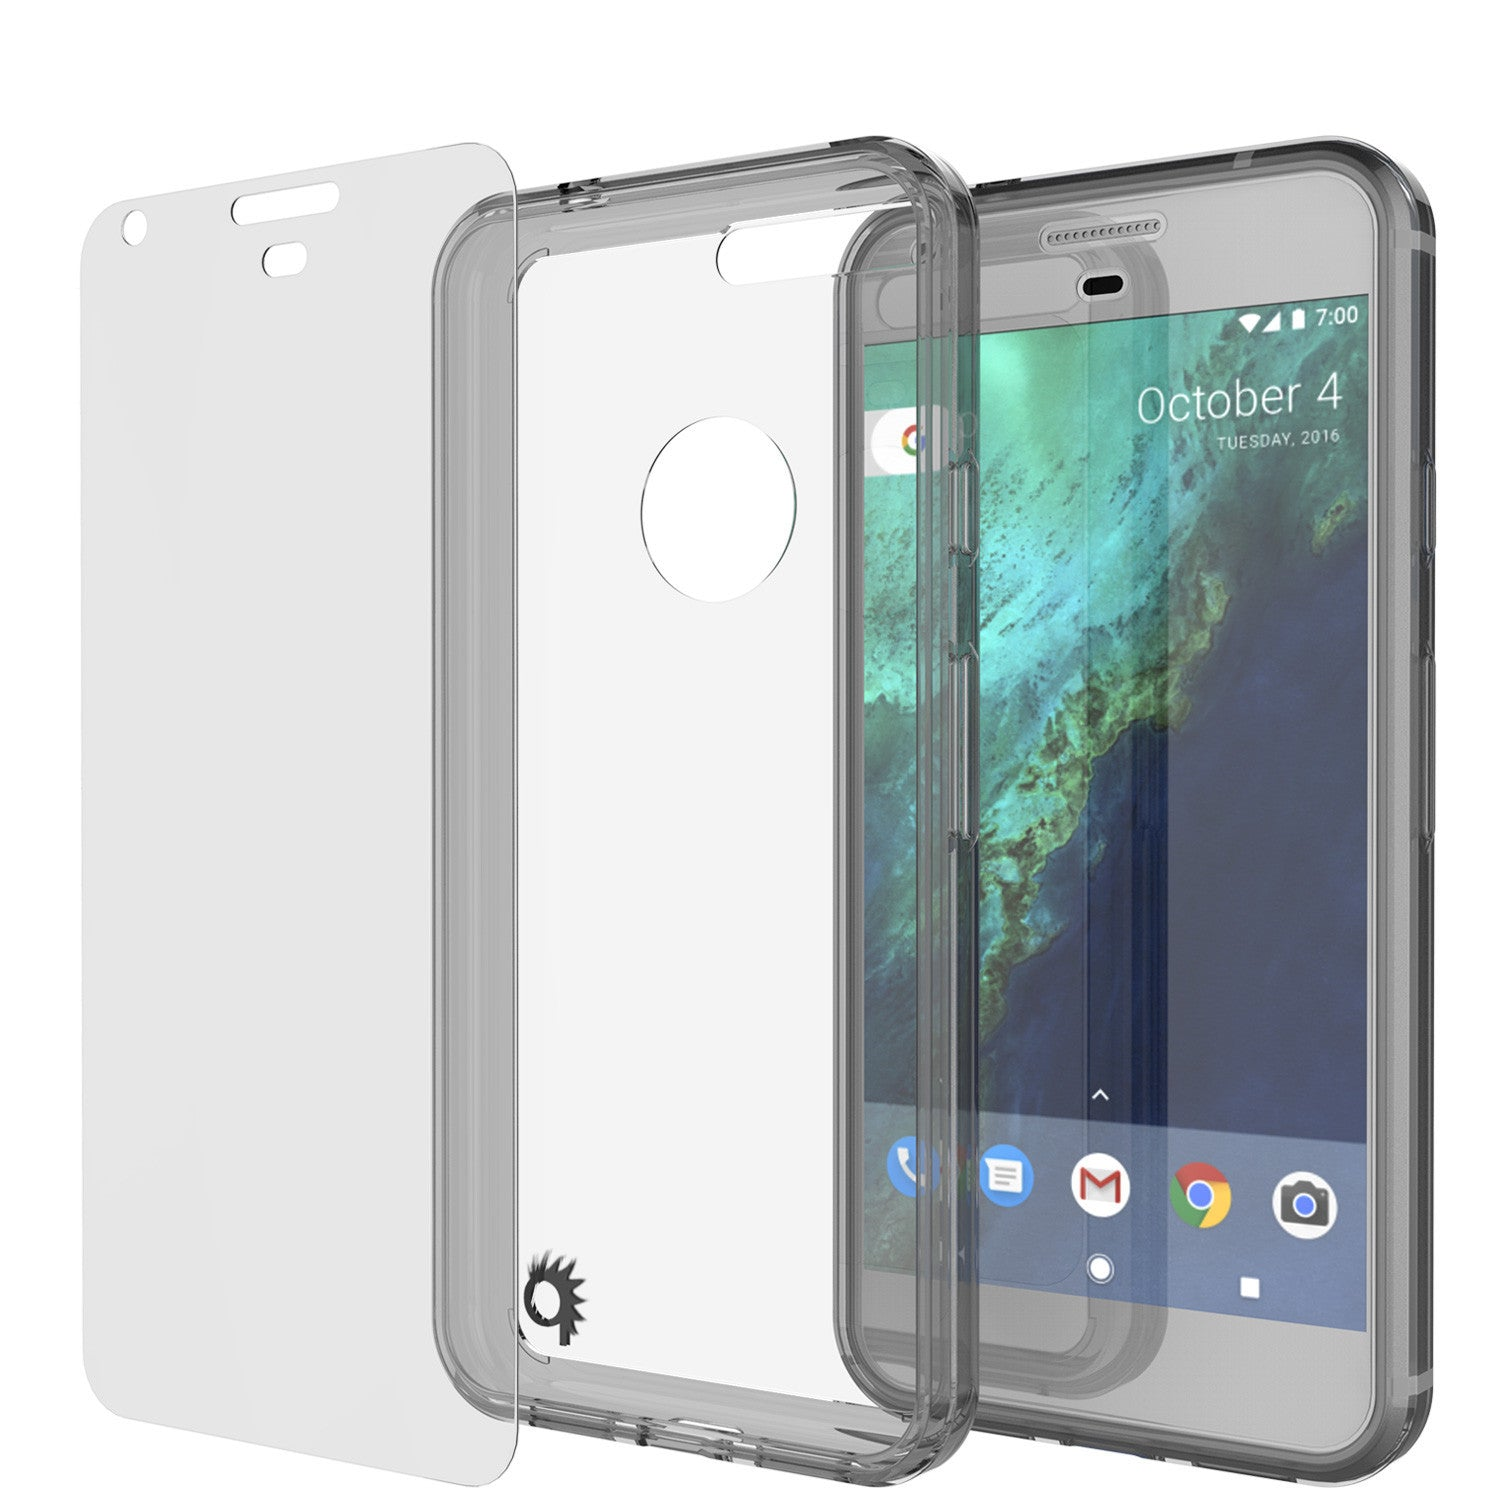 Google Pixel XL Case Punkcase® LUCID 2.0 Crystal Black Series w/ PUNK SHIELD Glass Screen Protector | Ultra Fit